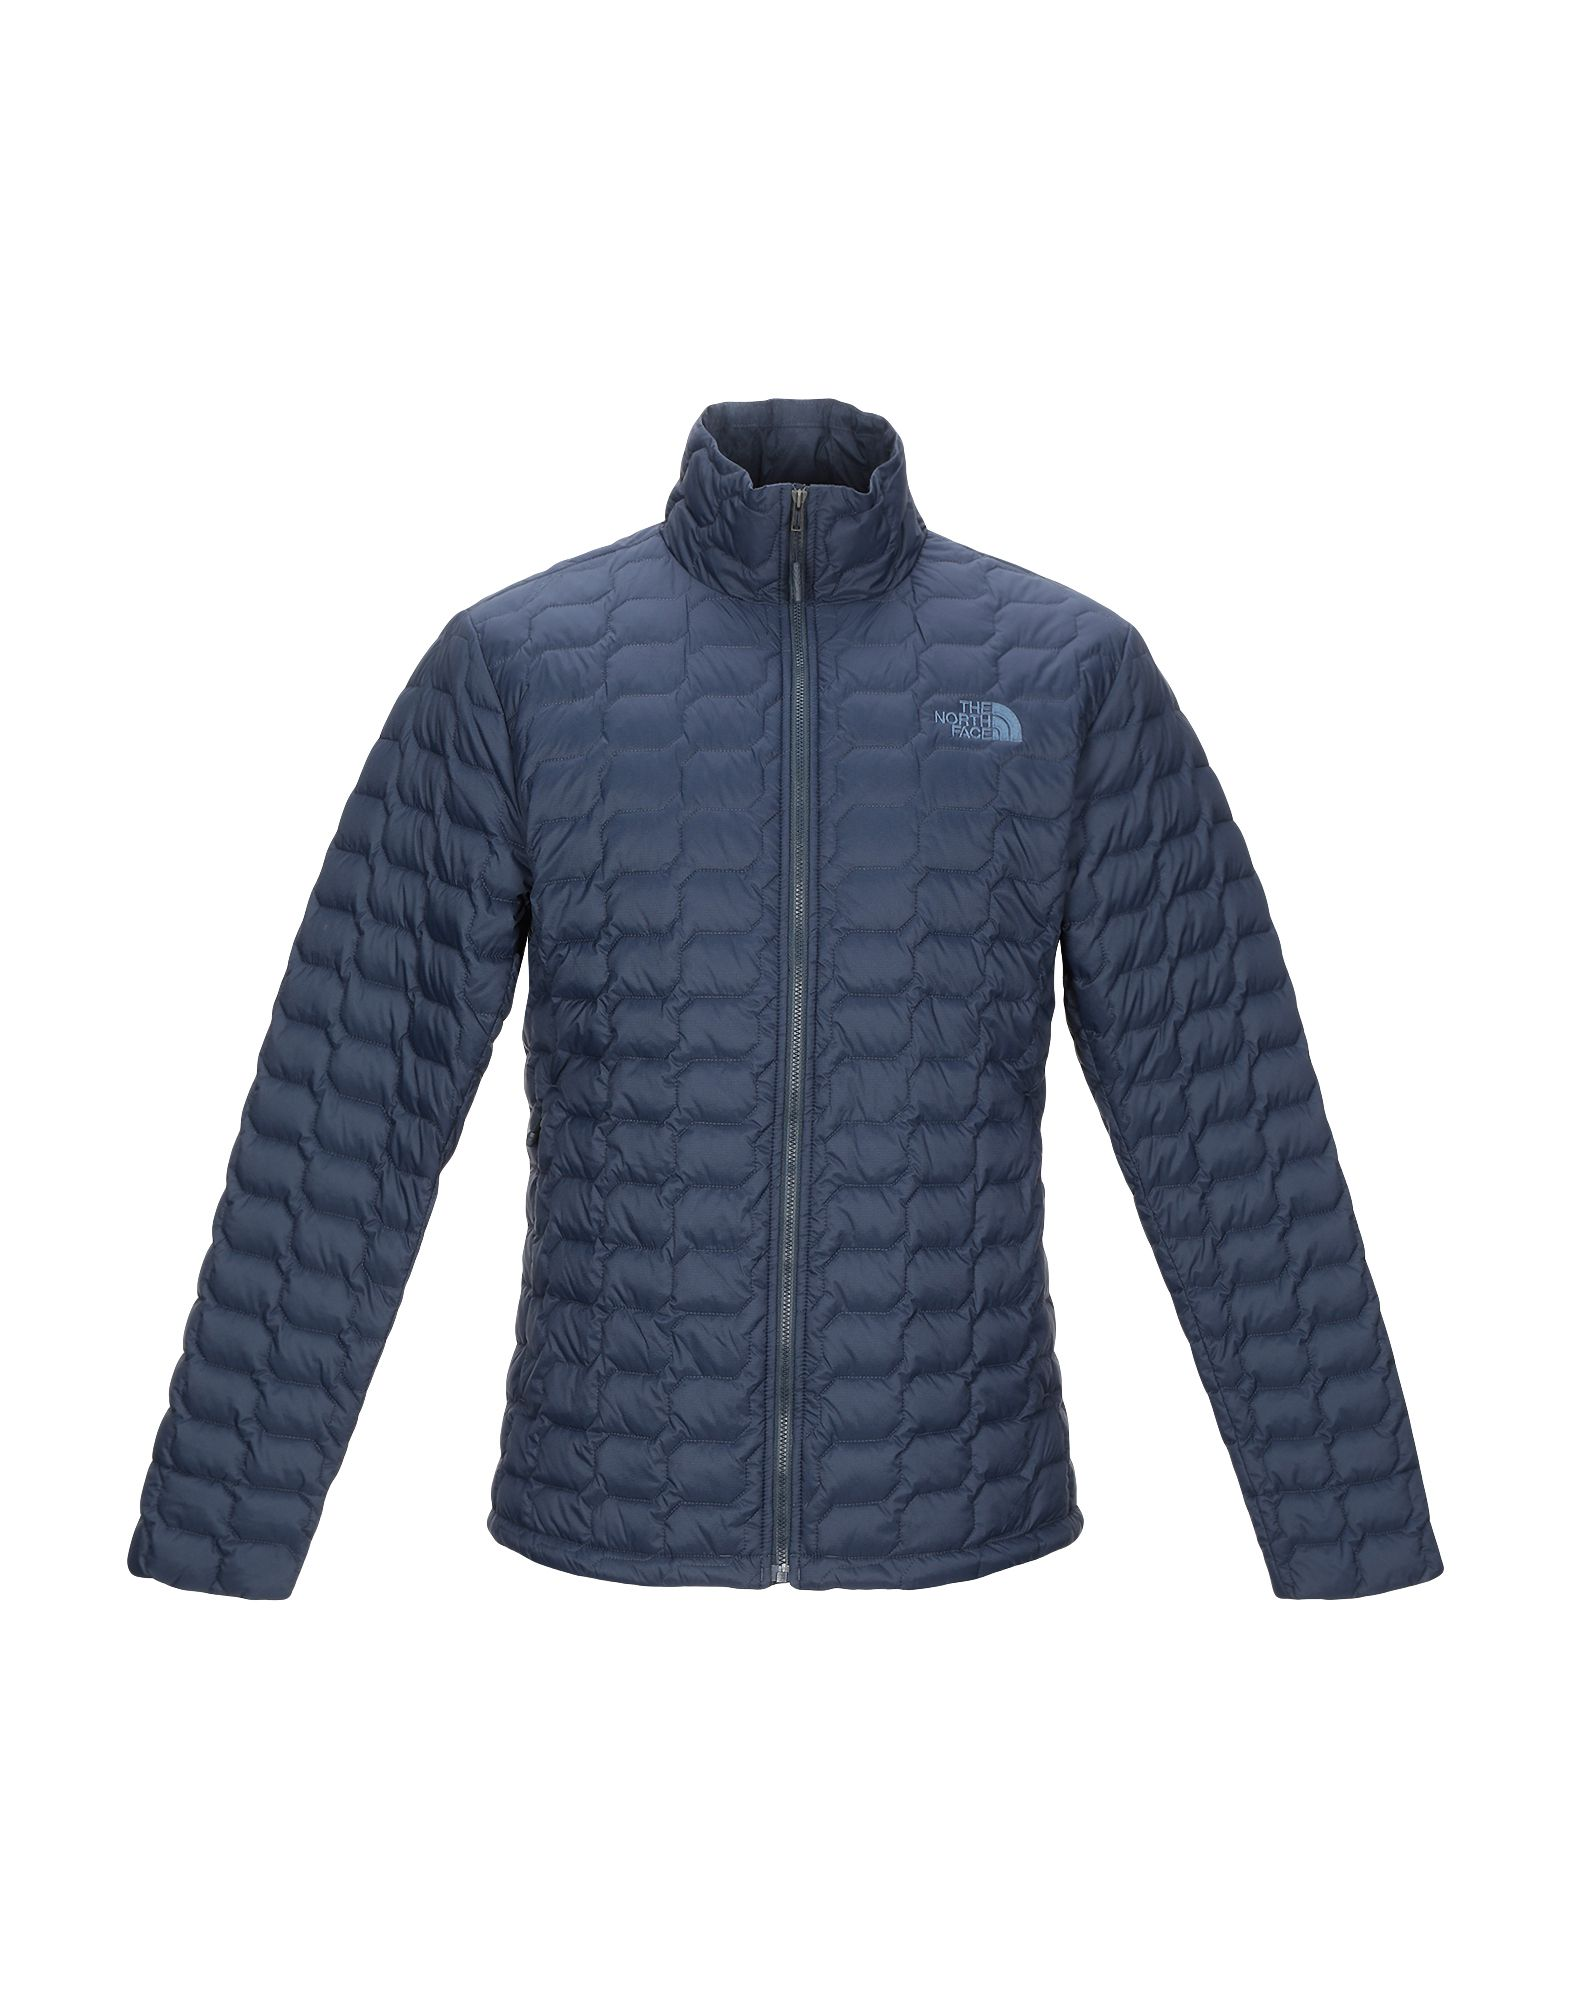 THE NORTH FACE Synthetic Down Jackets - Item 41915117